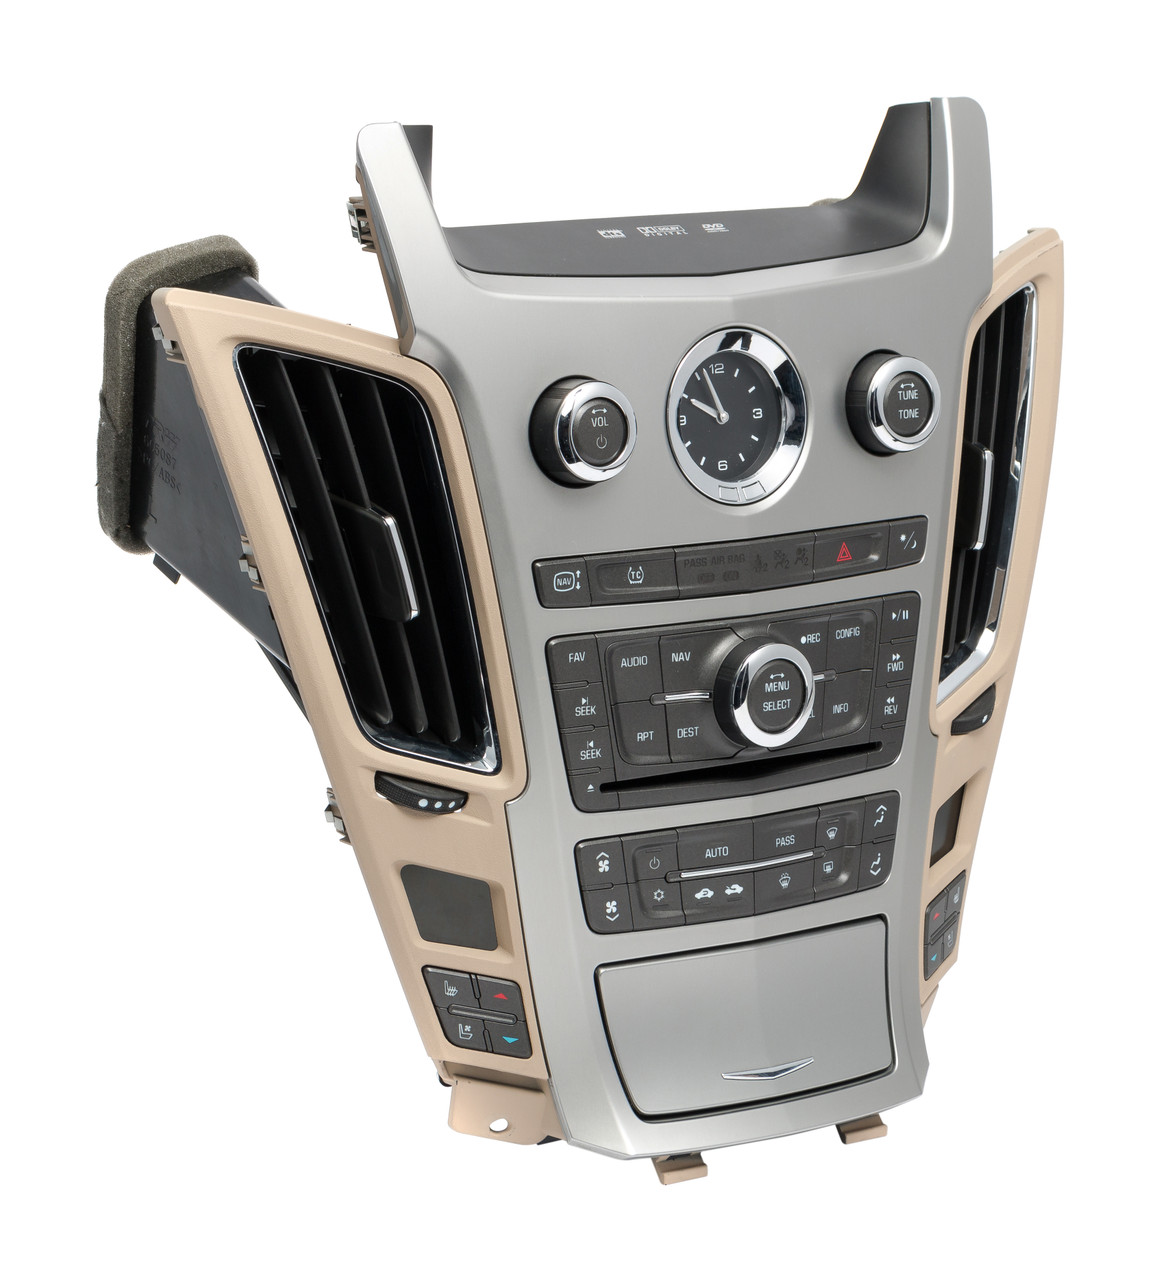 2008 2009 cadillac cts radio and temperature control panel. Black Bedroom Furniture Sets. Home Design Ideas